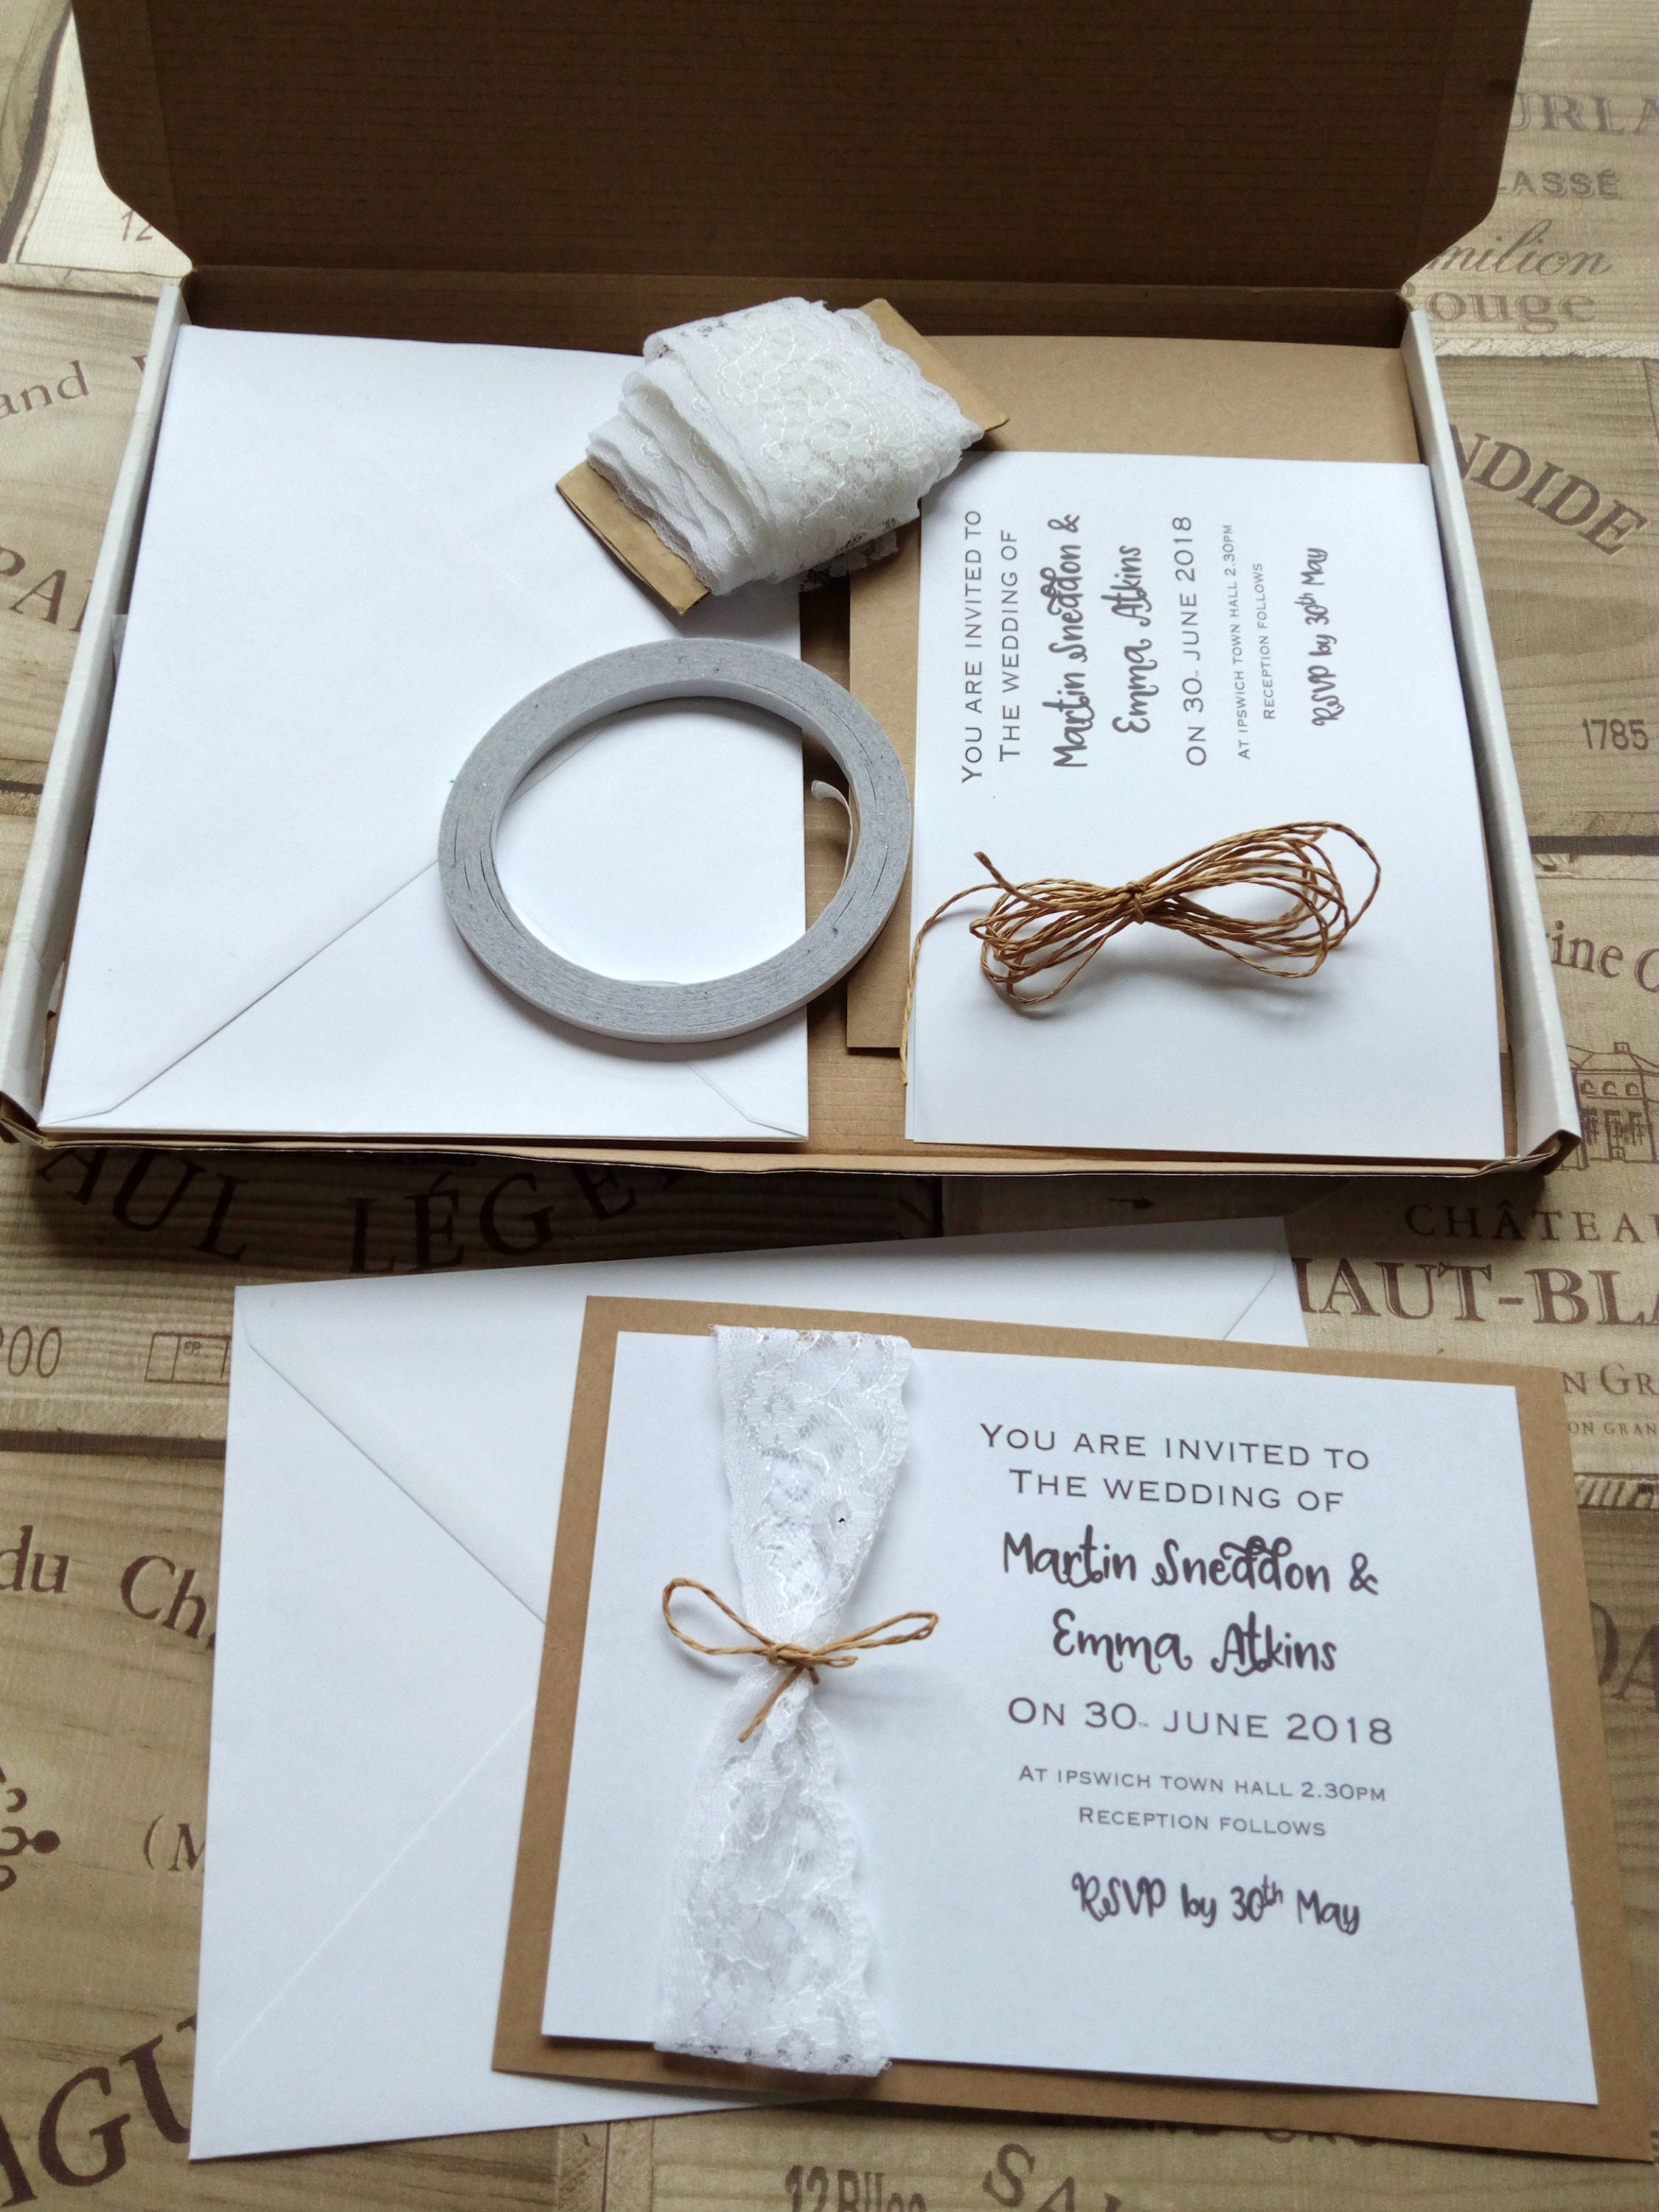 make your own wedding invitations kits - 28 images - fearsome diy ...